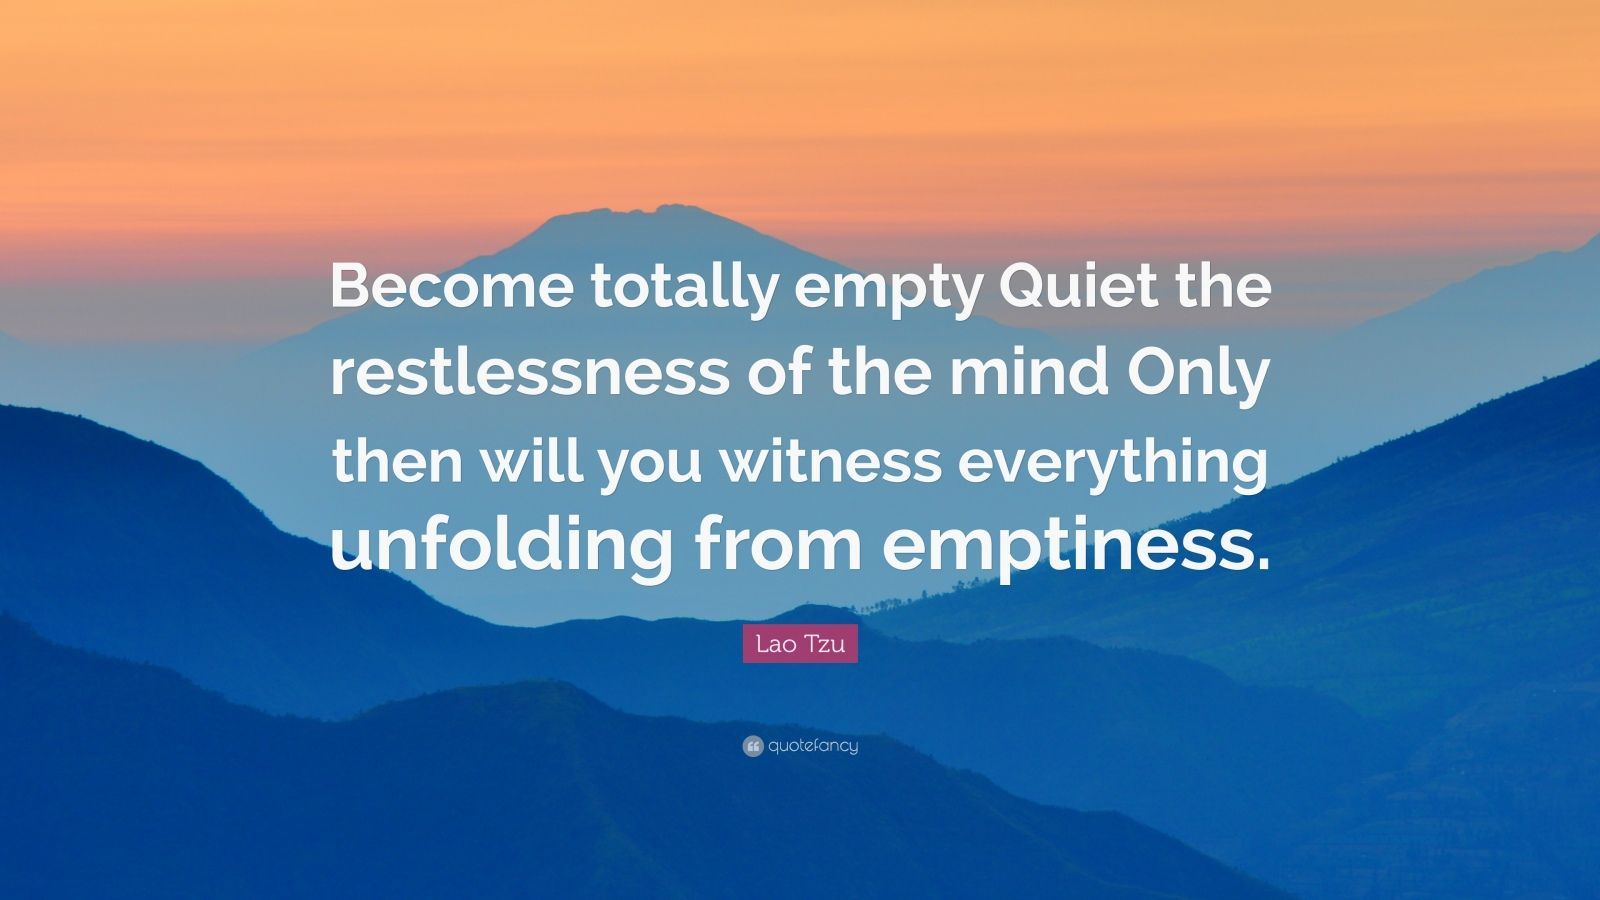 """Lao Tzu Quote: """"Become totally empty Quiet the restlessness of the mind Only then will you witness everything unfolding from emptiness."""""""